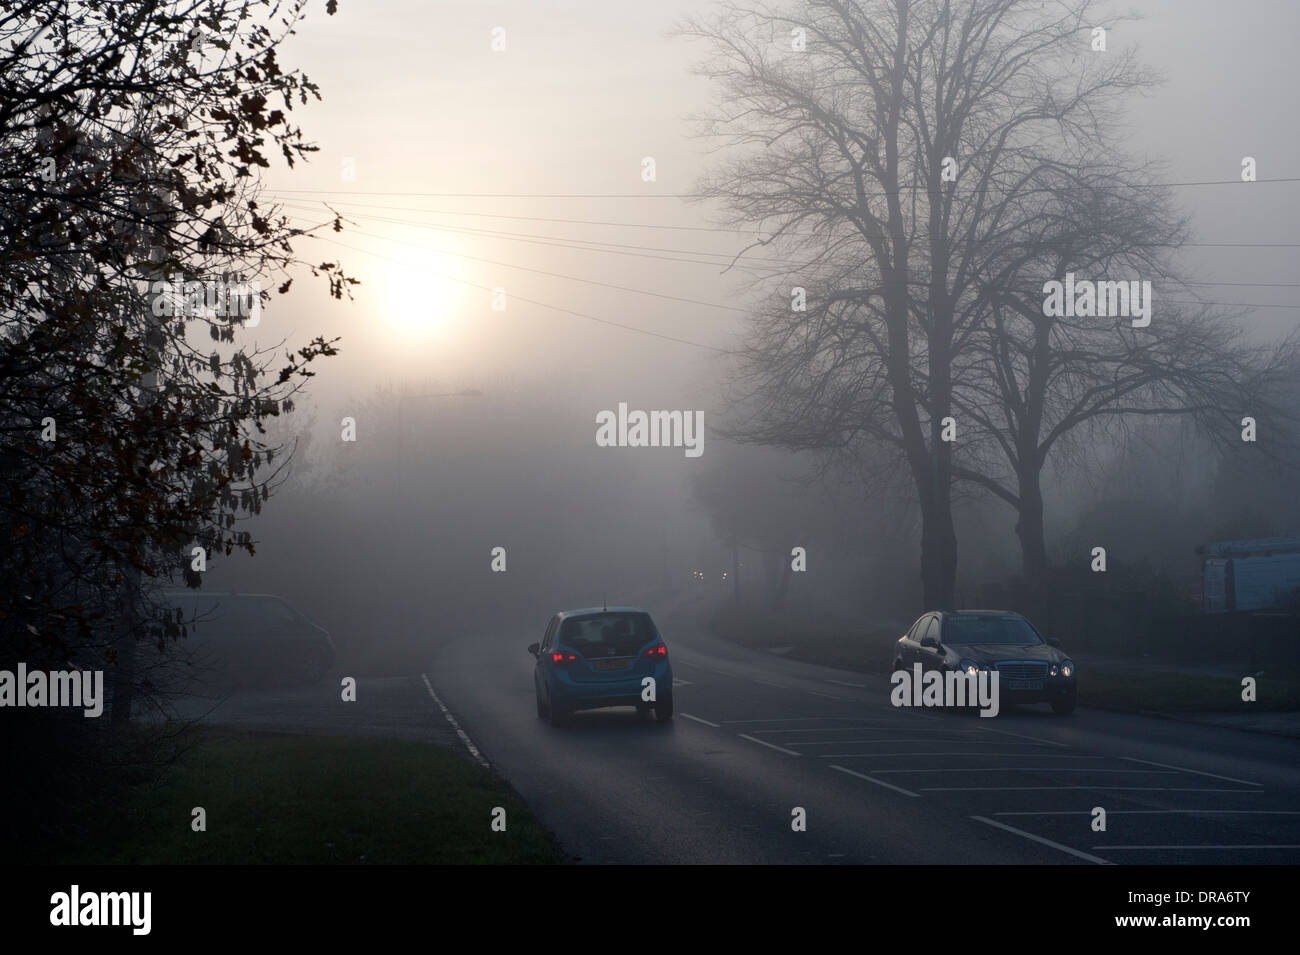 Road traffic during a foggy morning - Stock Image